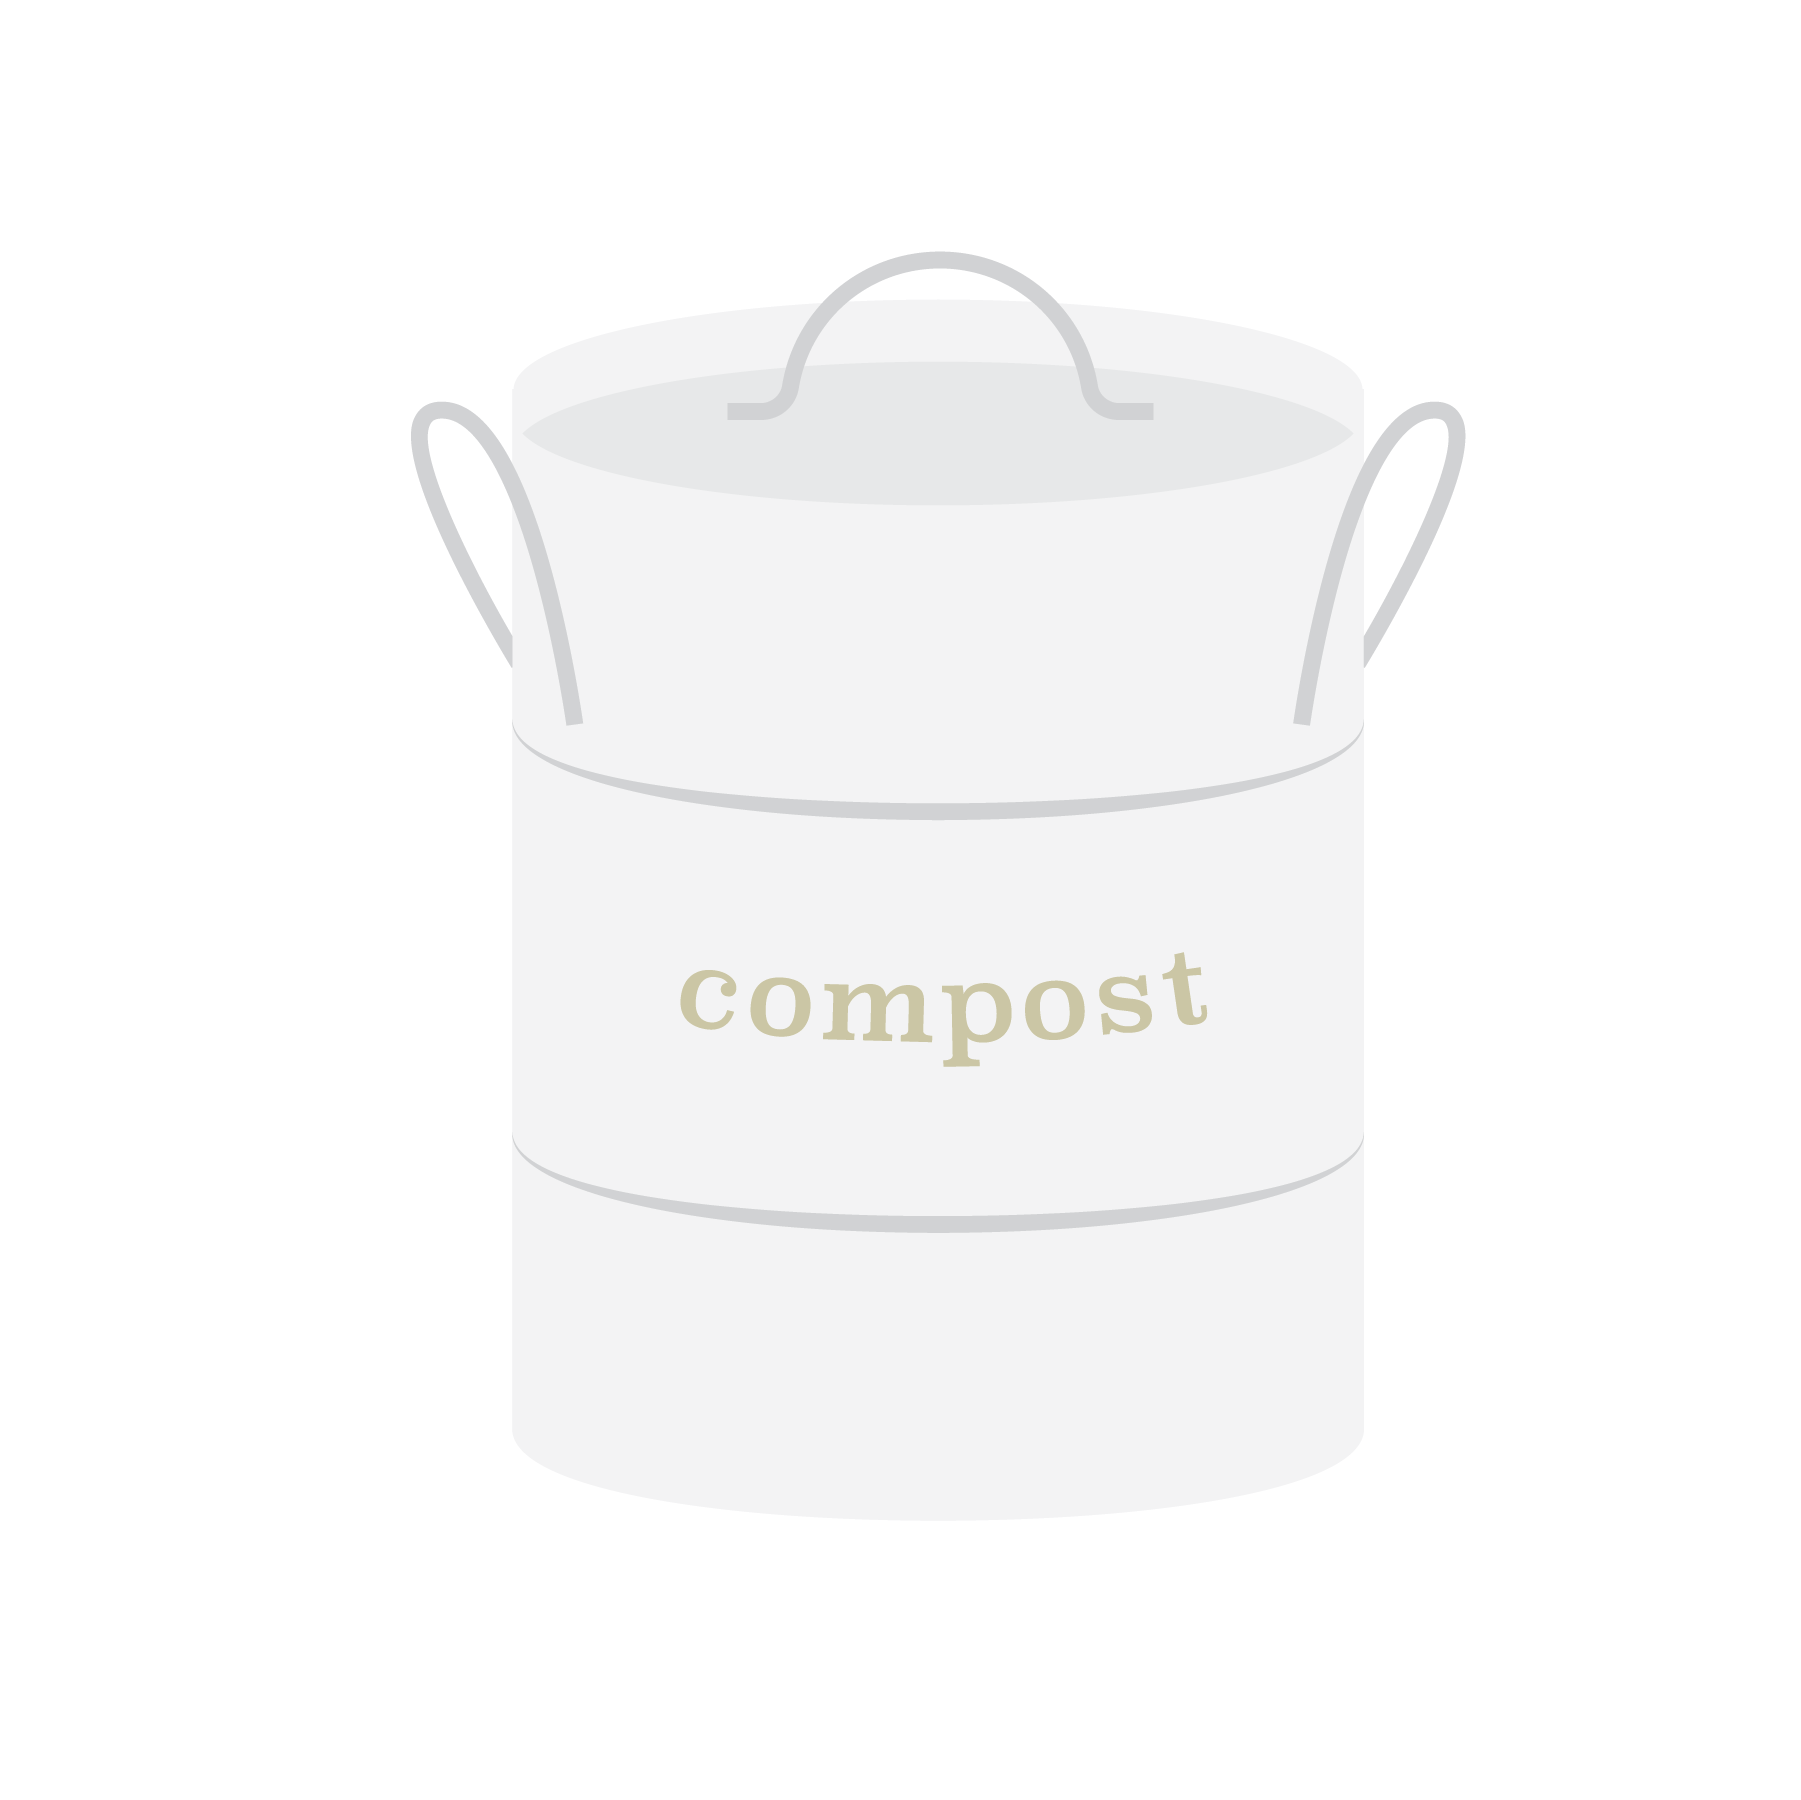 compost-02.png